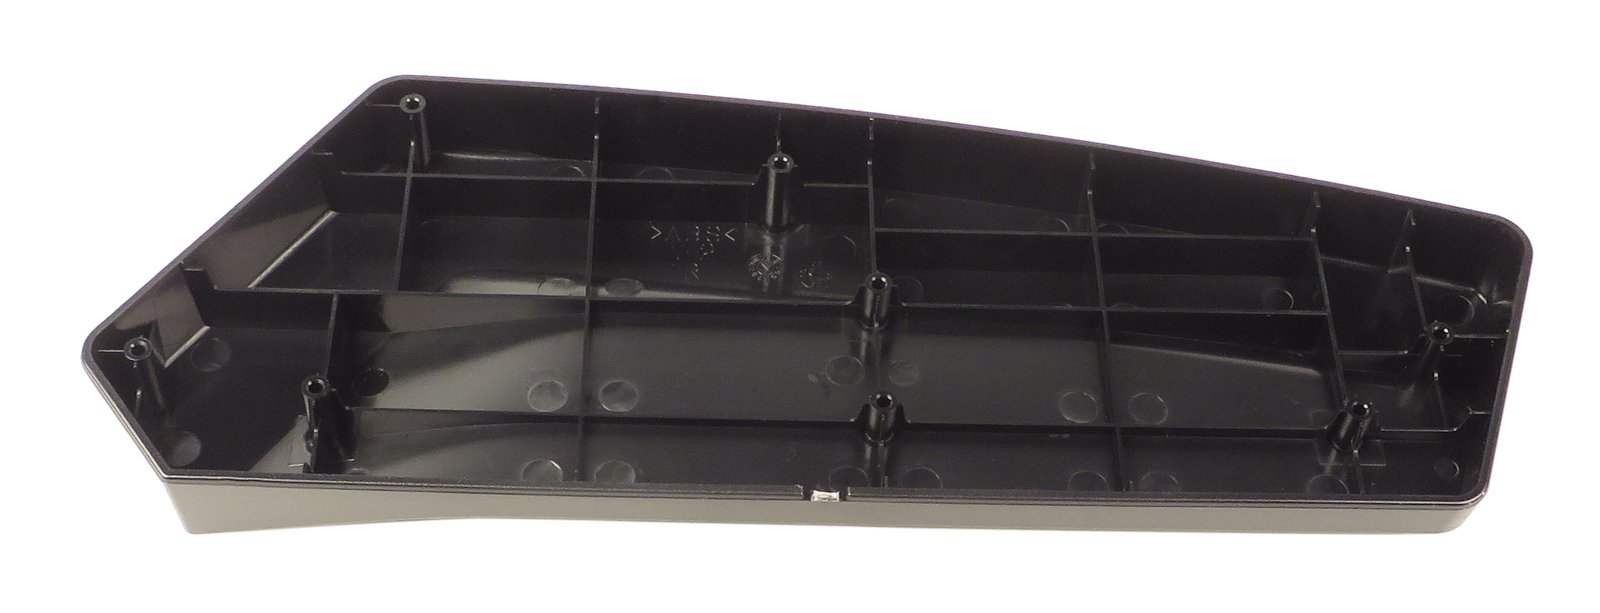 Right Side Panel for RD-700GX